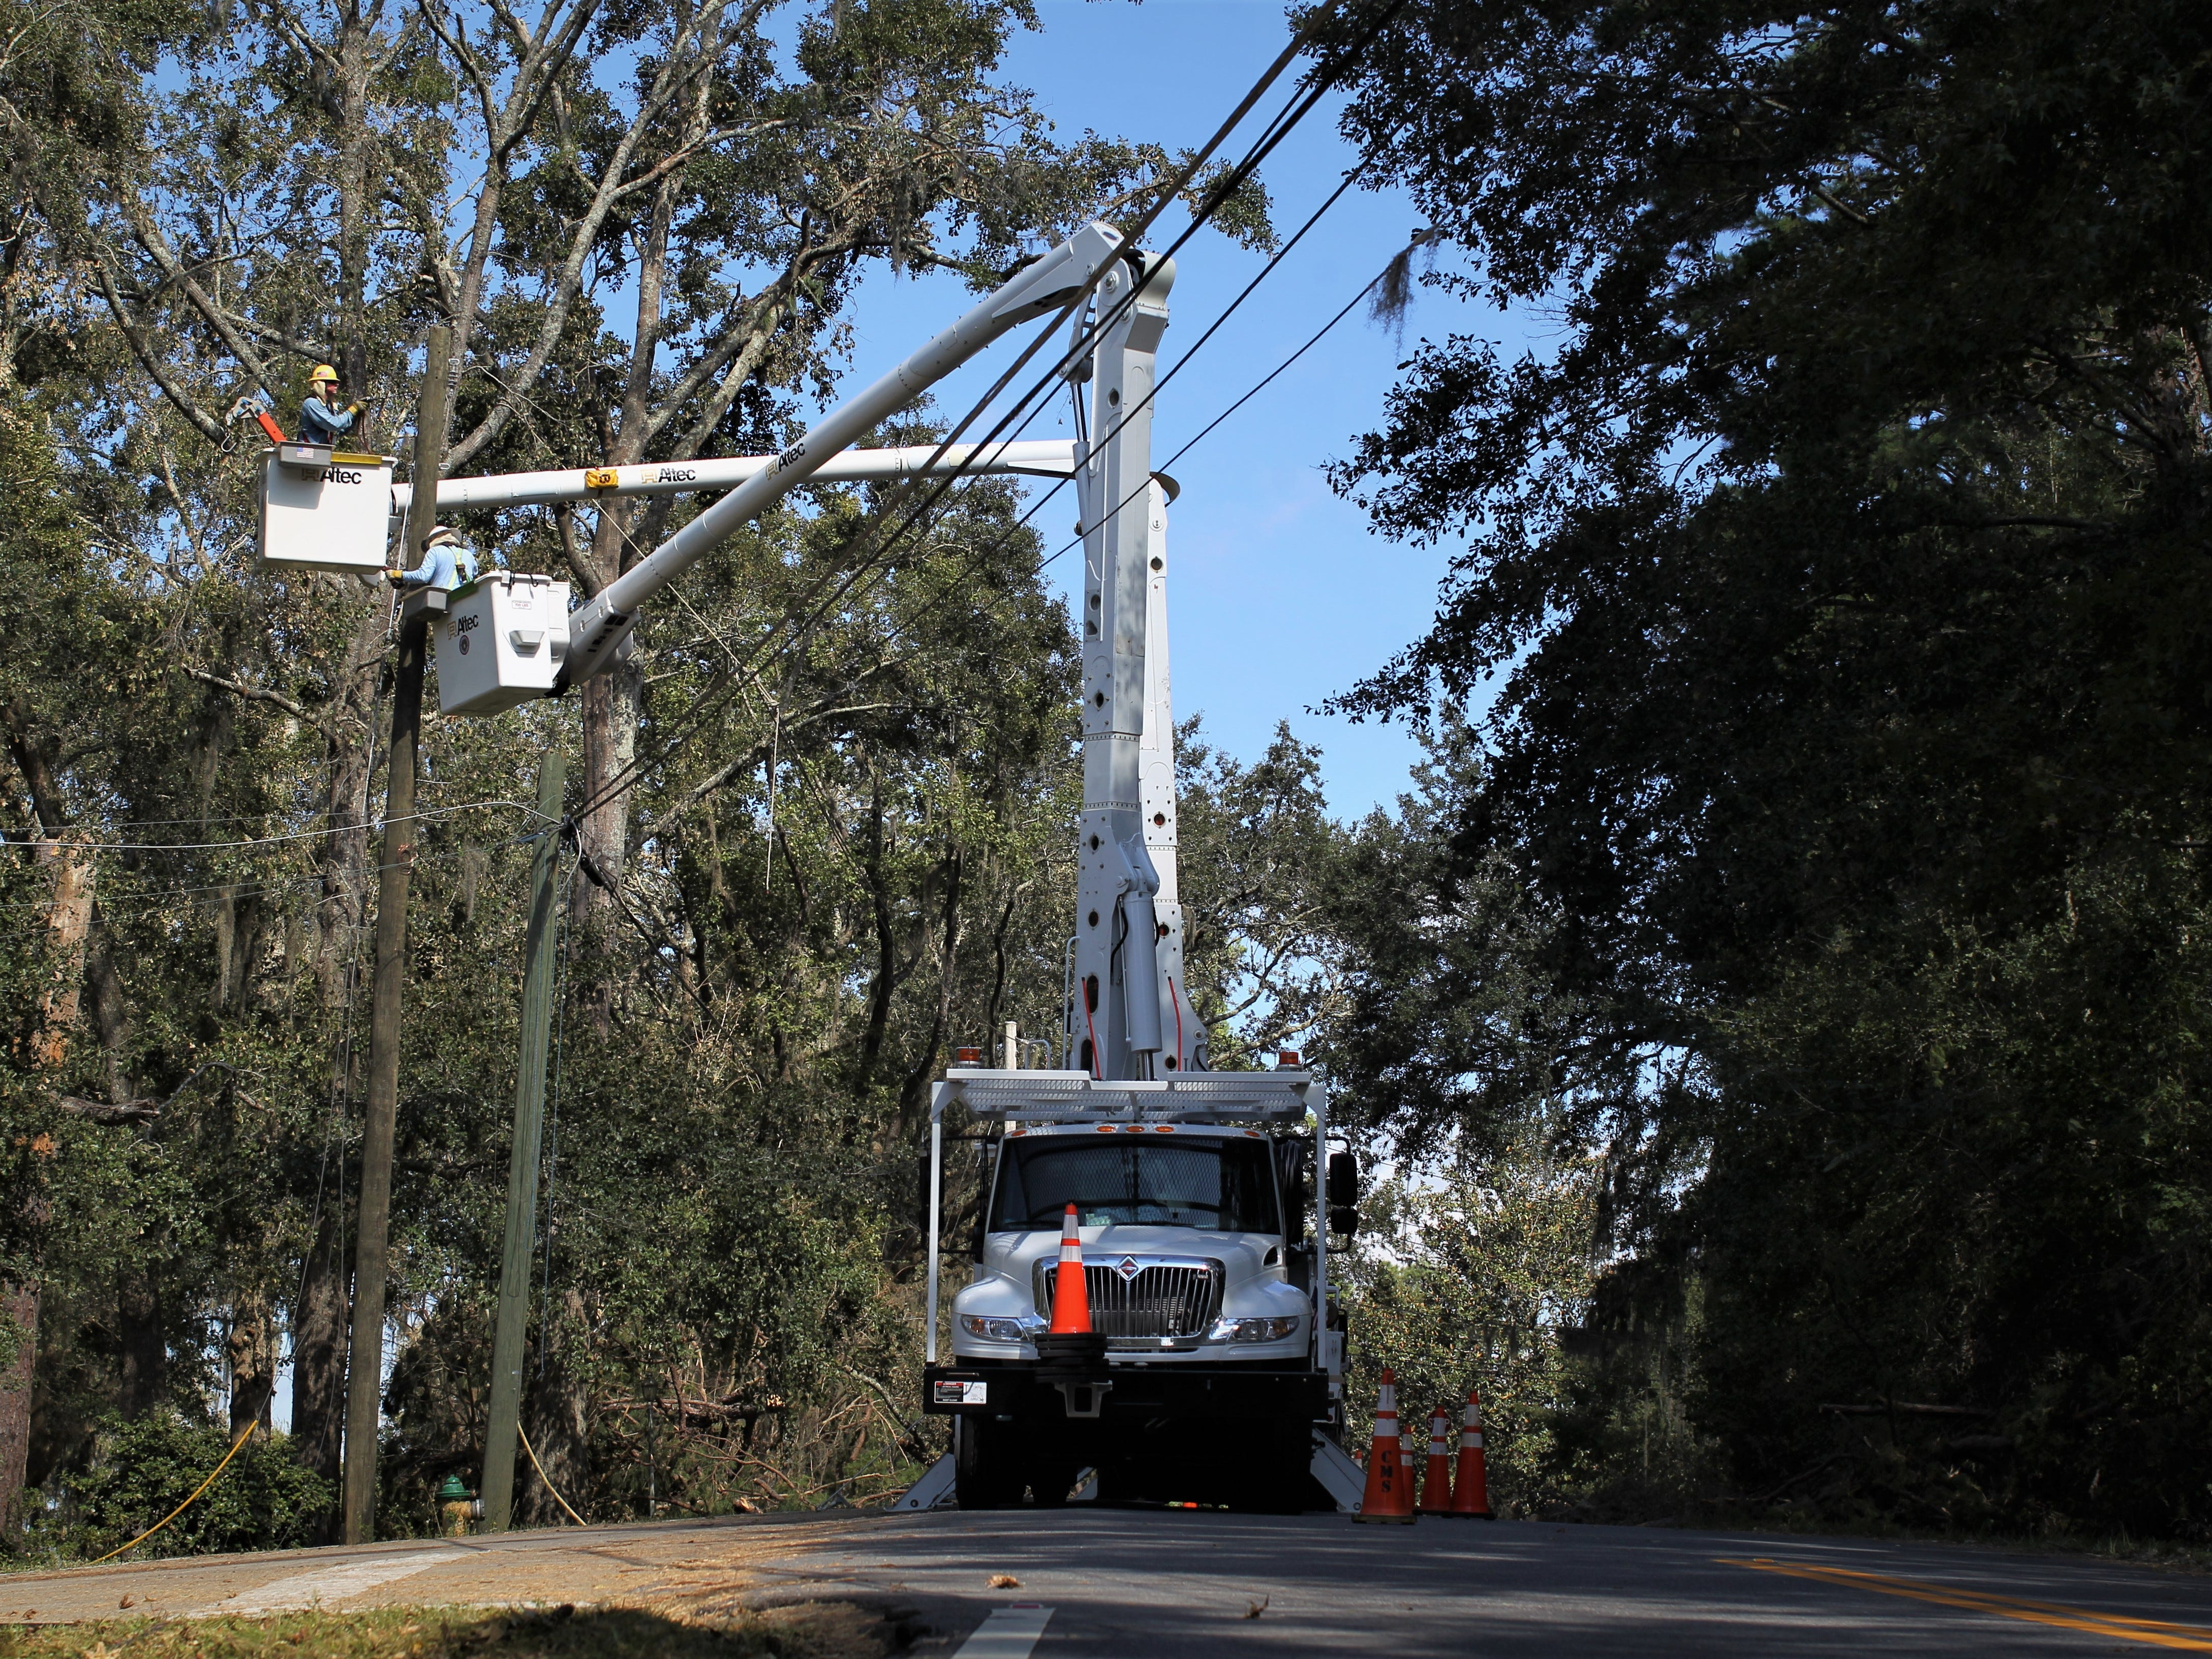 Recovery in Tallahassee along Lakeshore Drive following damage from Hurricane Michael.